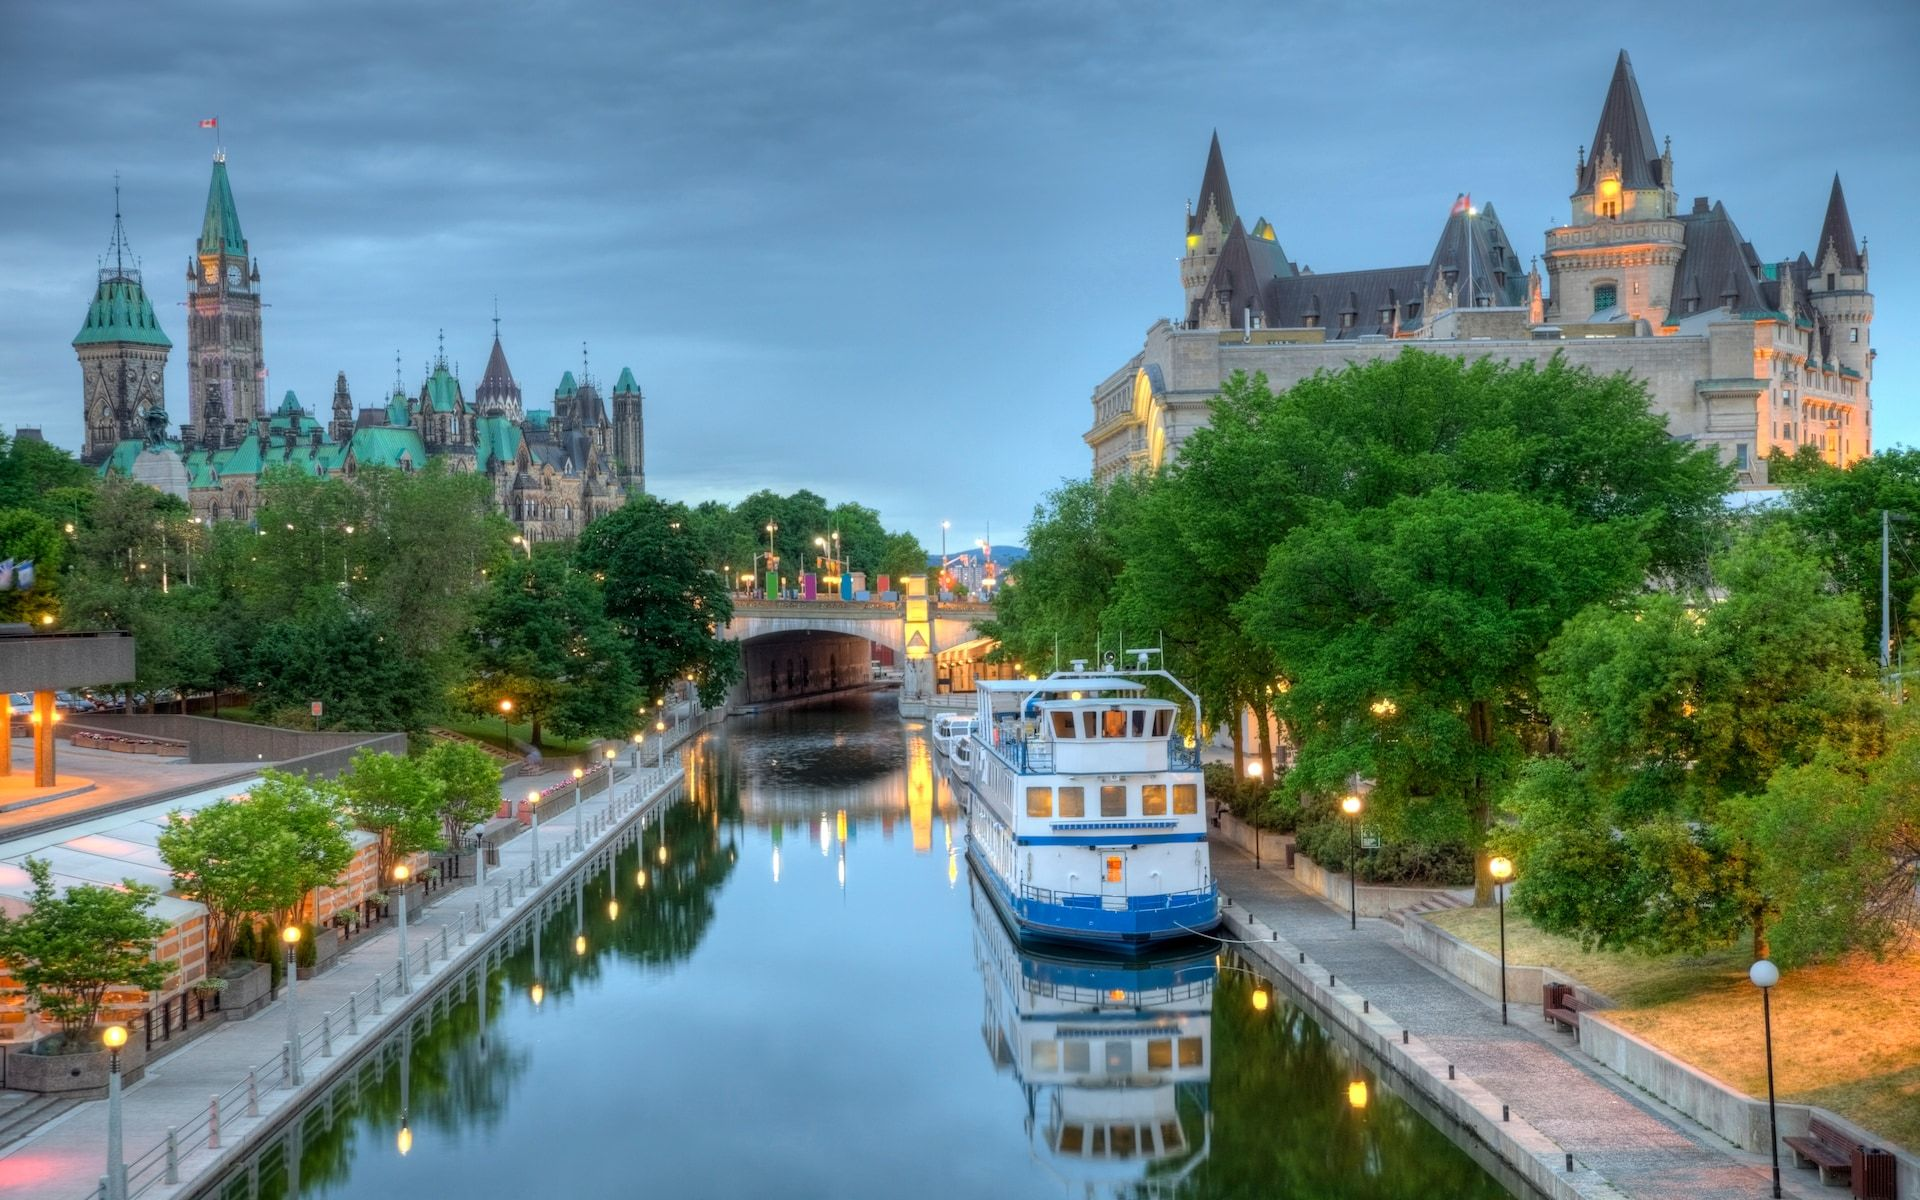 Scenic Canal Holidays for spring Rideau canal, Ottawa